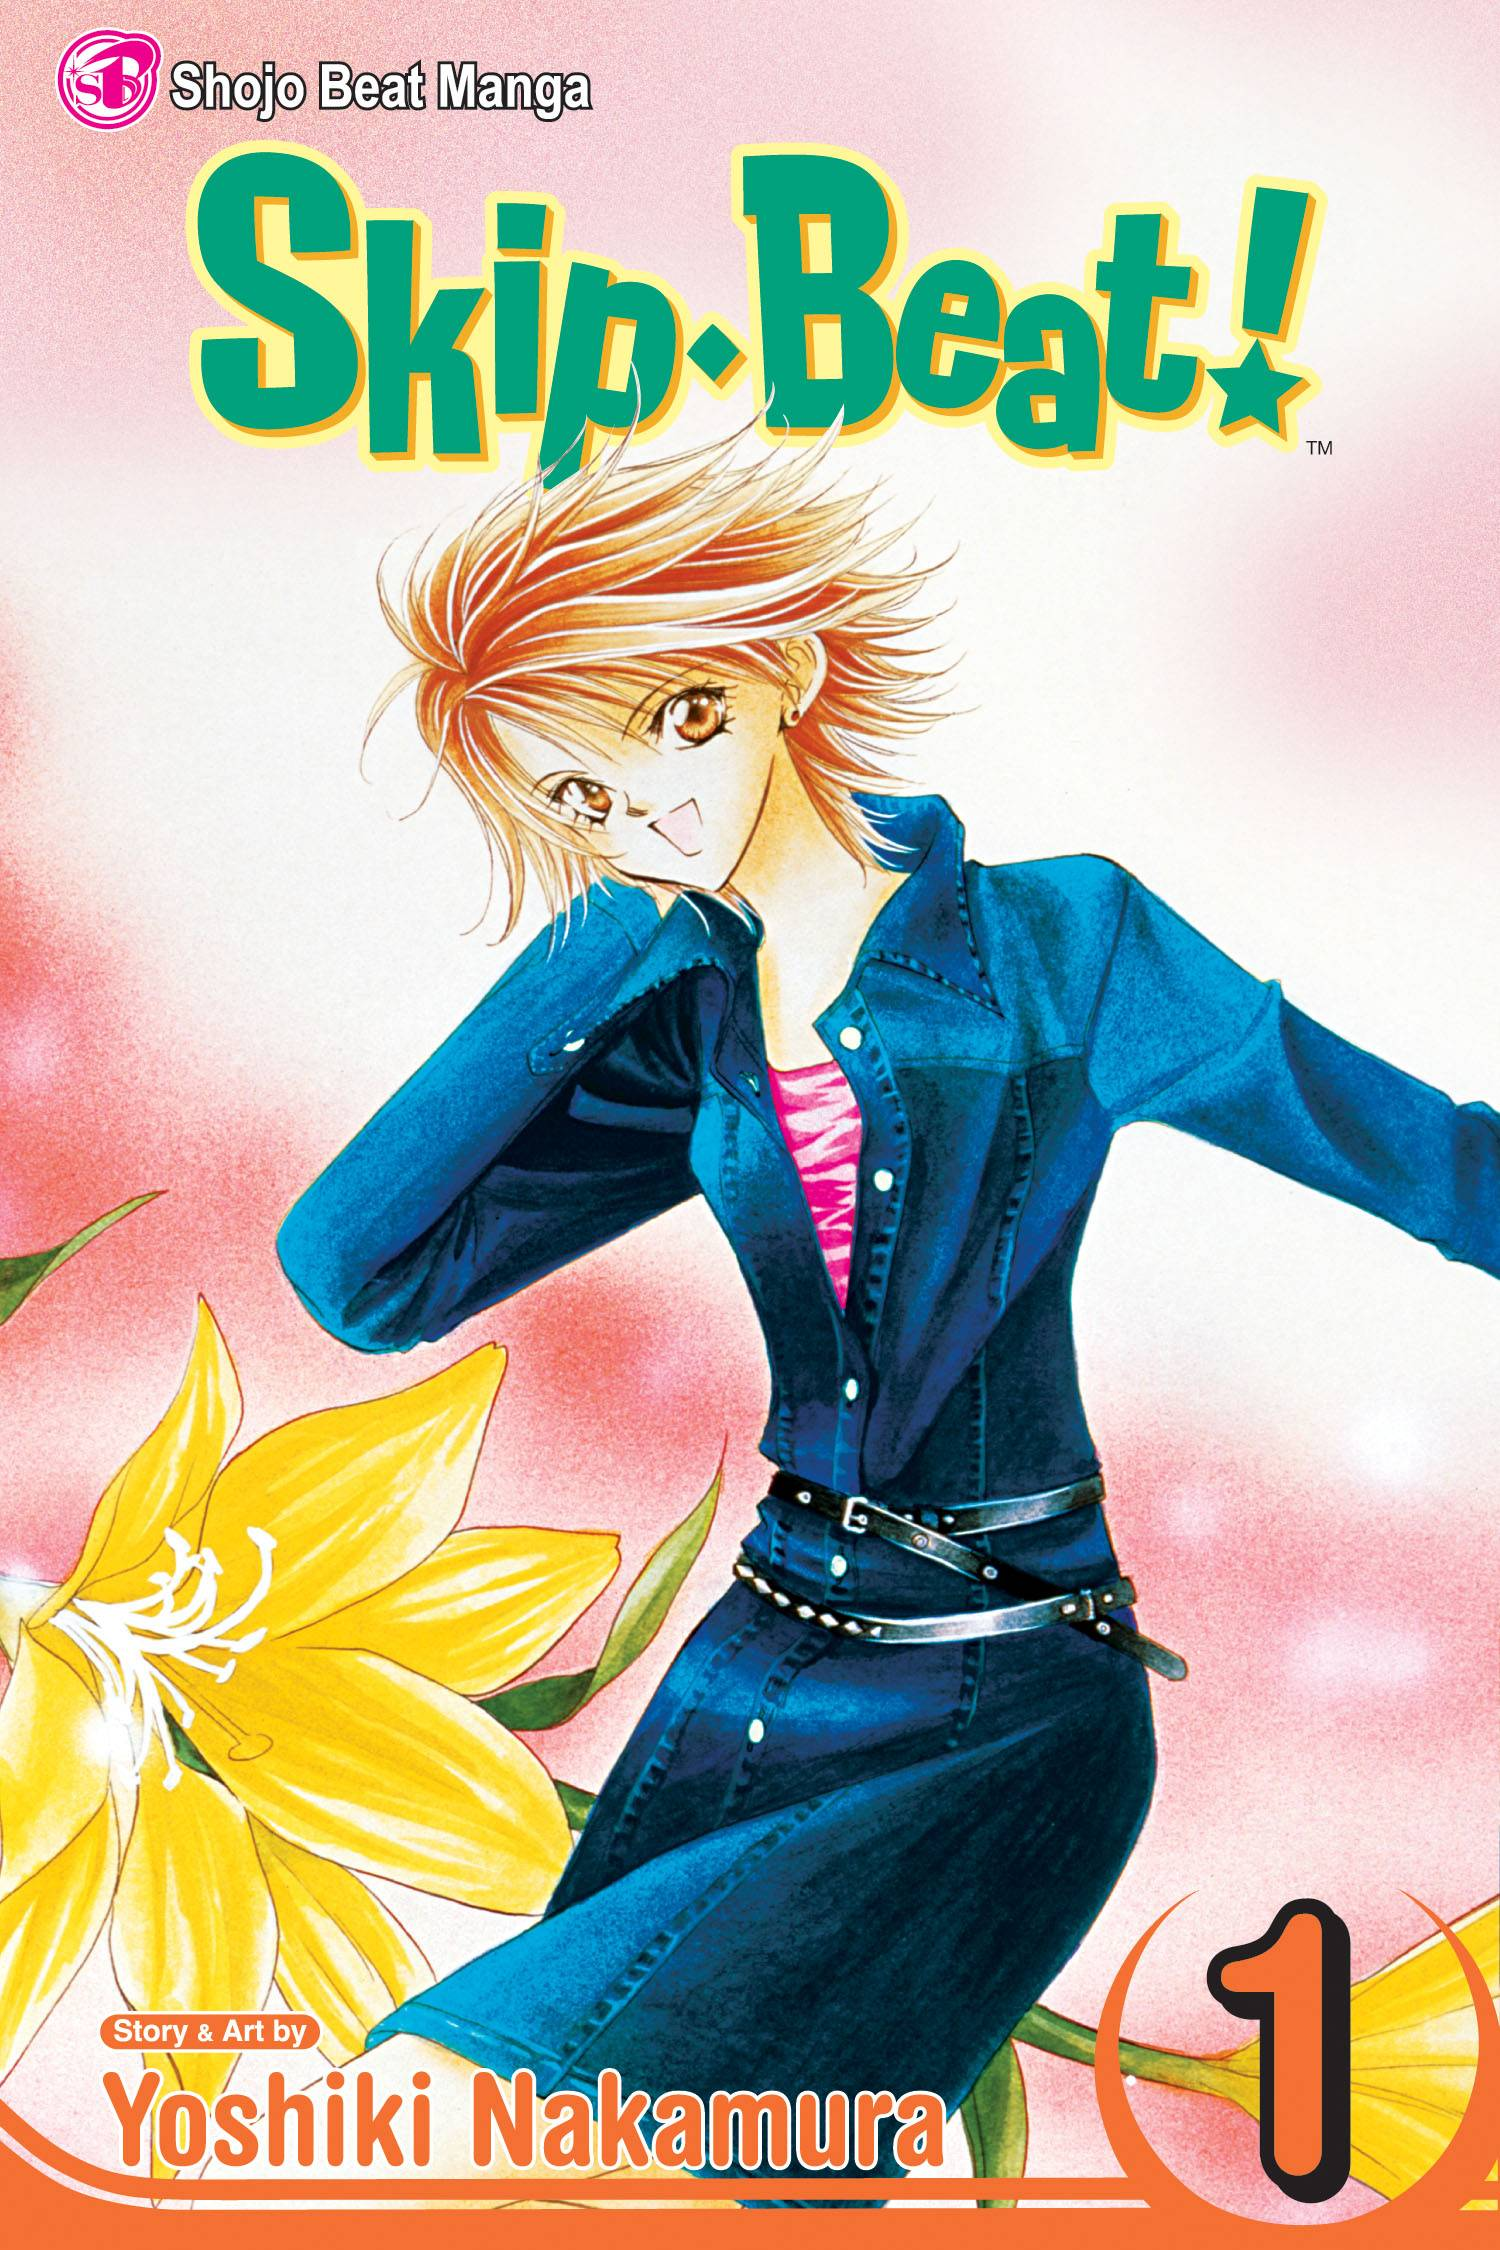 Skip Beat GN Vol 1 - Lauren's PickWriter/Artist:  Yoshiki Nakamura16-year-old Kyoko Mogami is practically a saint! A high school dropout, she works two menial jobs in order to support her best friend Sho in his pursuit of stardom. Though Sho doesn't seem to appreciate Kyoko's hard work, she knows one day he'll see her selfless actions and realize he's loved her all along. When Sho betrays her, Kyoko knows there's only one way to get revenge: become a bigger star than her friend-turned-nemesis. What follows is the hilarious and heartwarming story of her quest! Skip Beat features many staples of shojo manga, but Kyoko is no traditional heroine! Her vengeful spirit is the driving force of the storyline as she shuns the gentle selflessness she once embodied, but could this rejection of her softer side be what's holding her back? If you're looking for a cute and fun story with a little bit of an edge, look no further than Skip Beat!